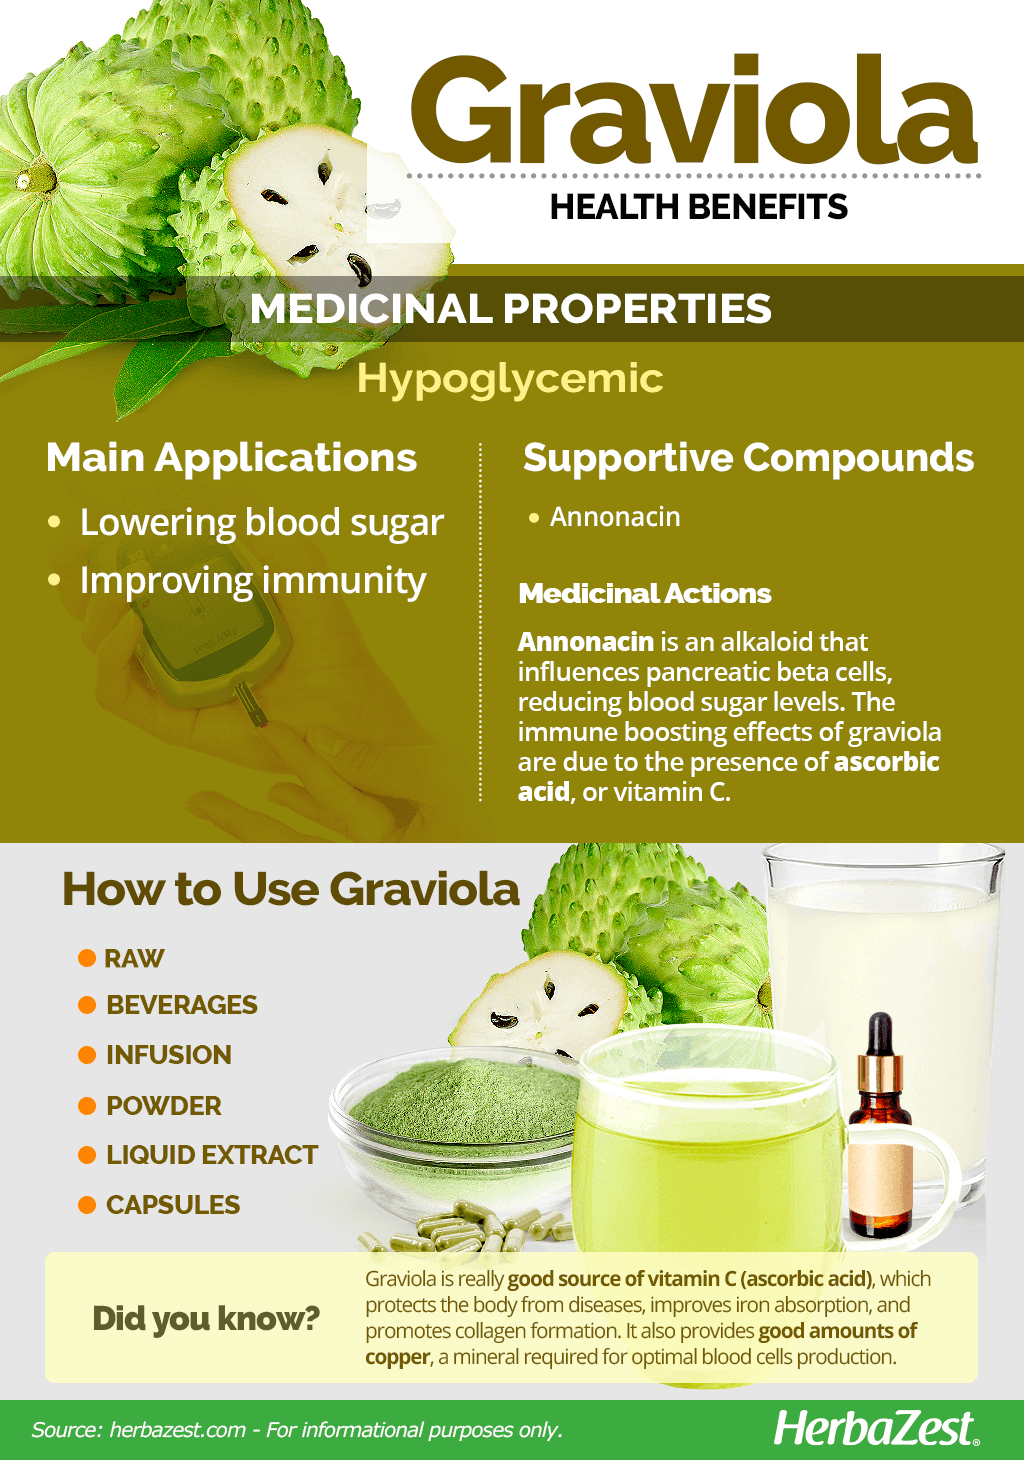 All About Graviola